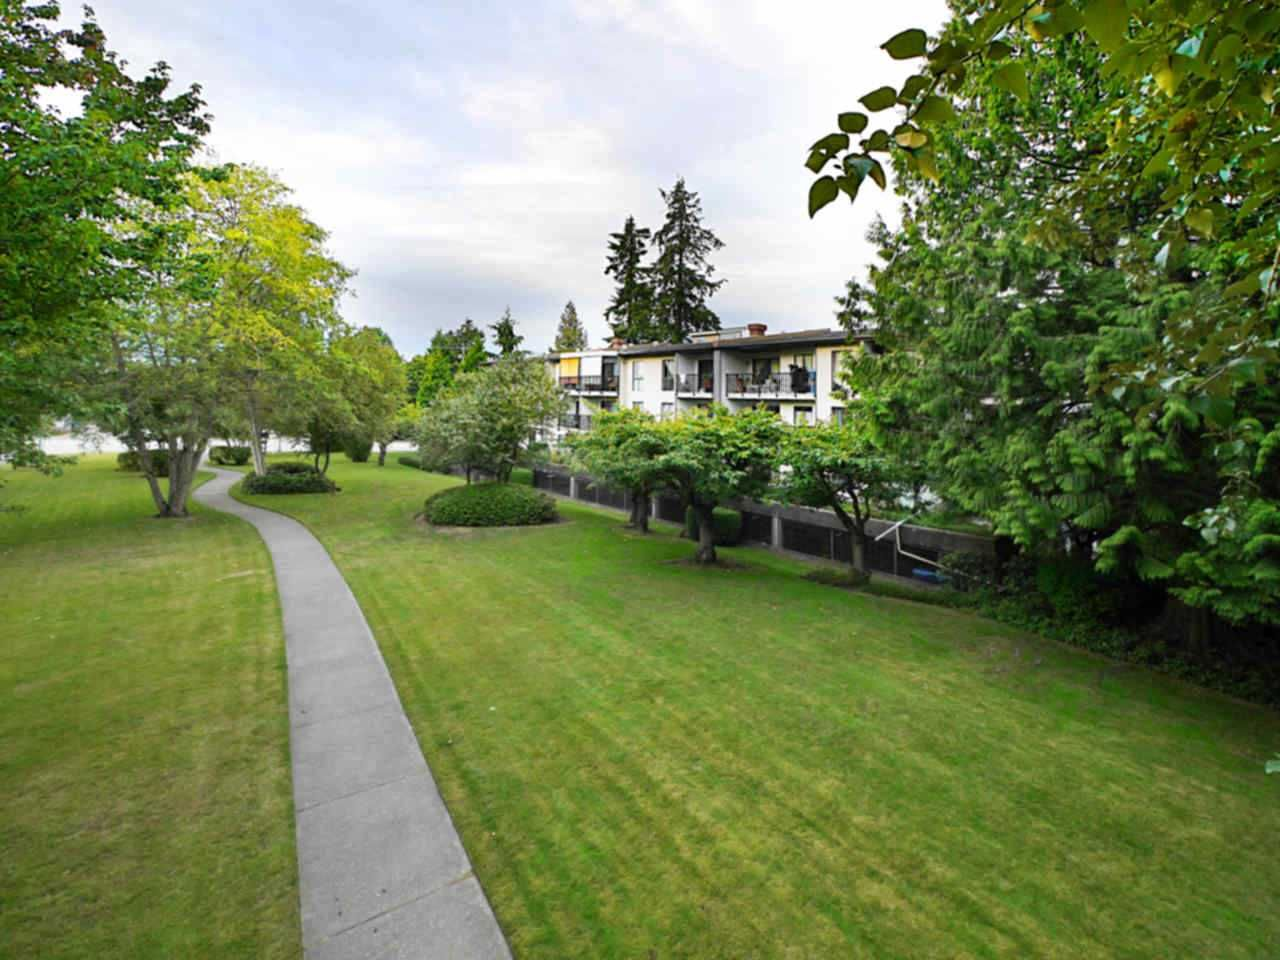 """Photo 6: Photos: 105 9952 149 Street in Surrey: Guildford Condo for sale in """"Tall Timbers"""" (North Surrey)  : MLS®# R2107429"""